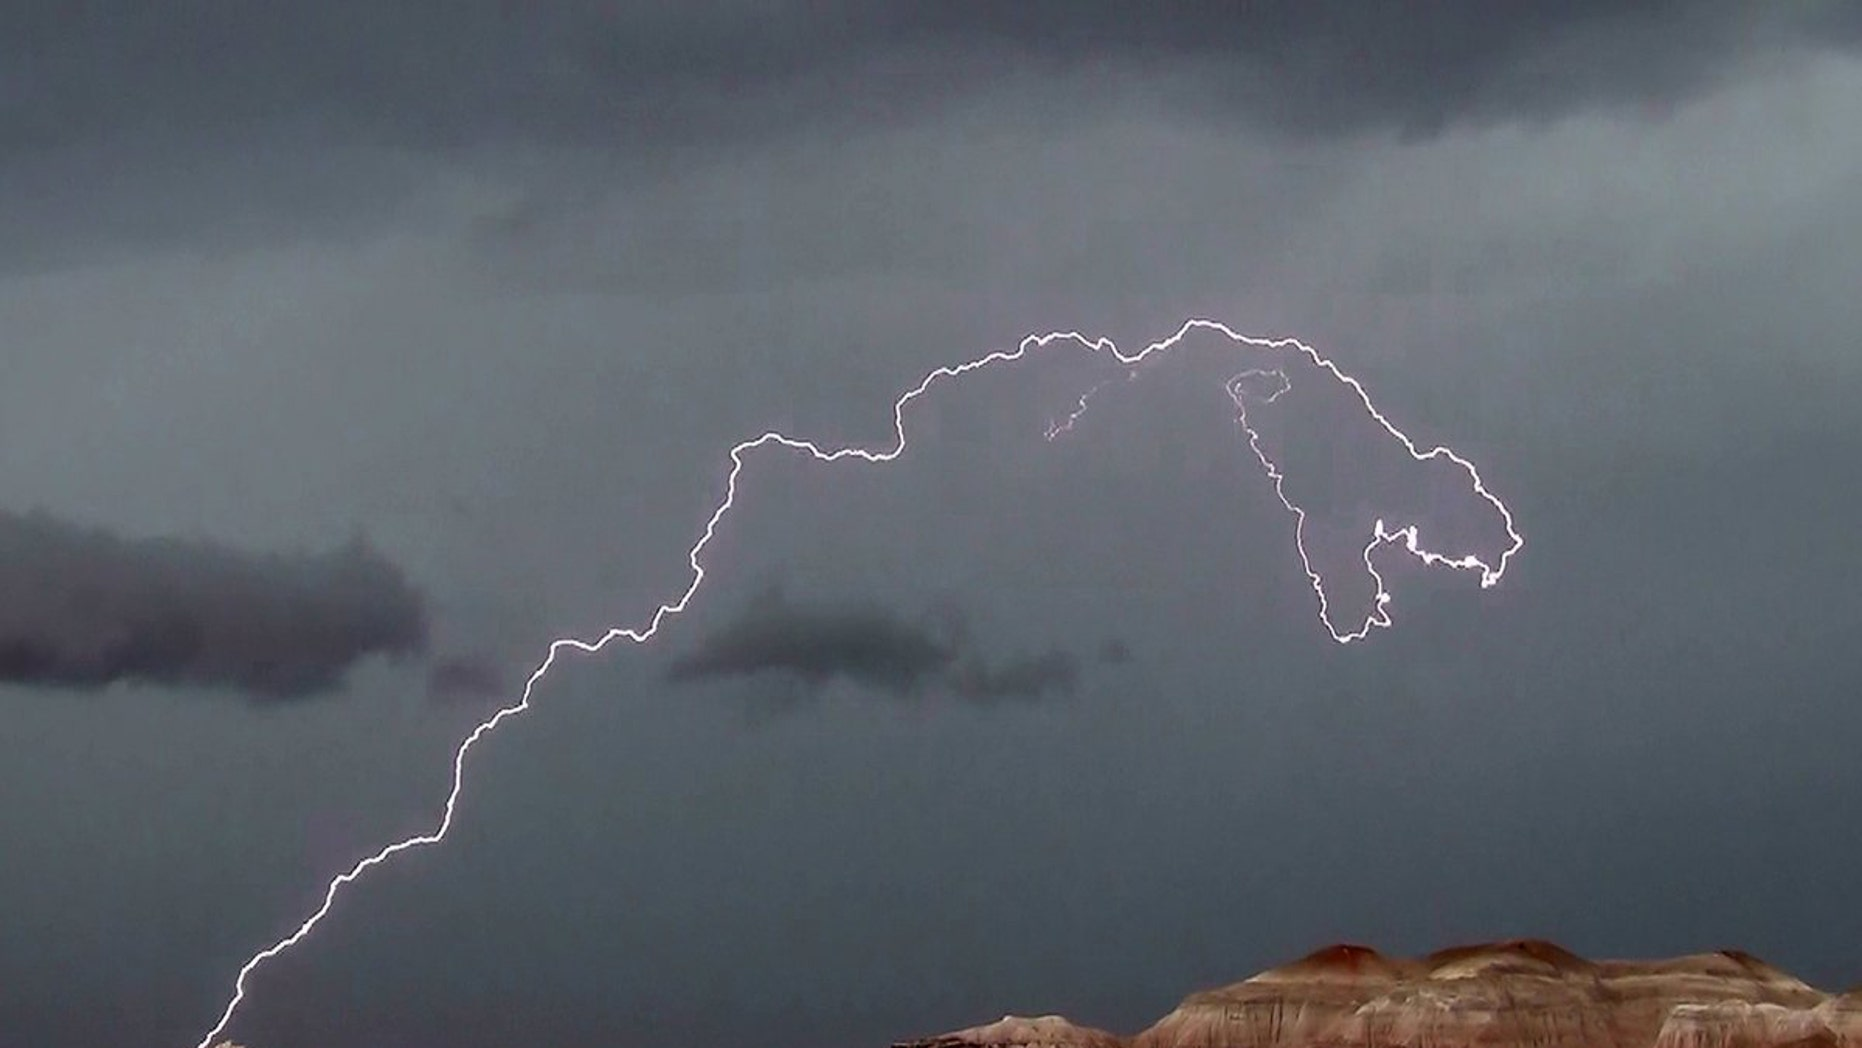 Lightning in Petrified Forest National Park in Arizona on July 26, 2013.